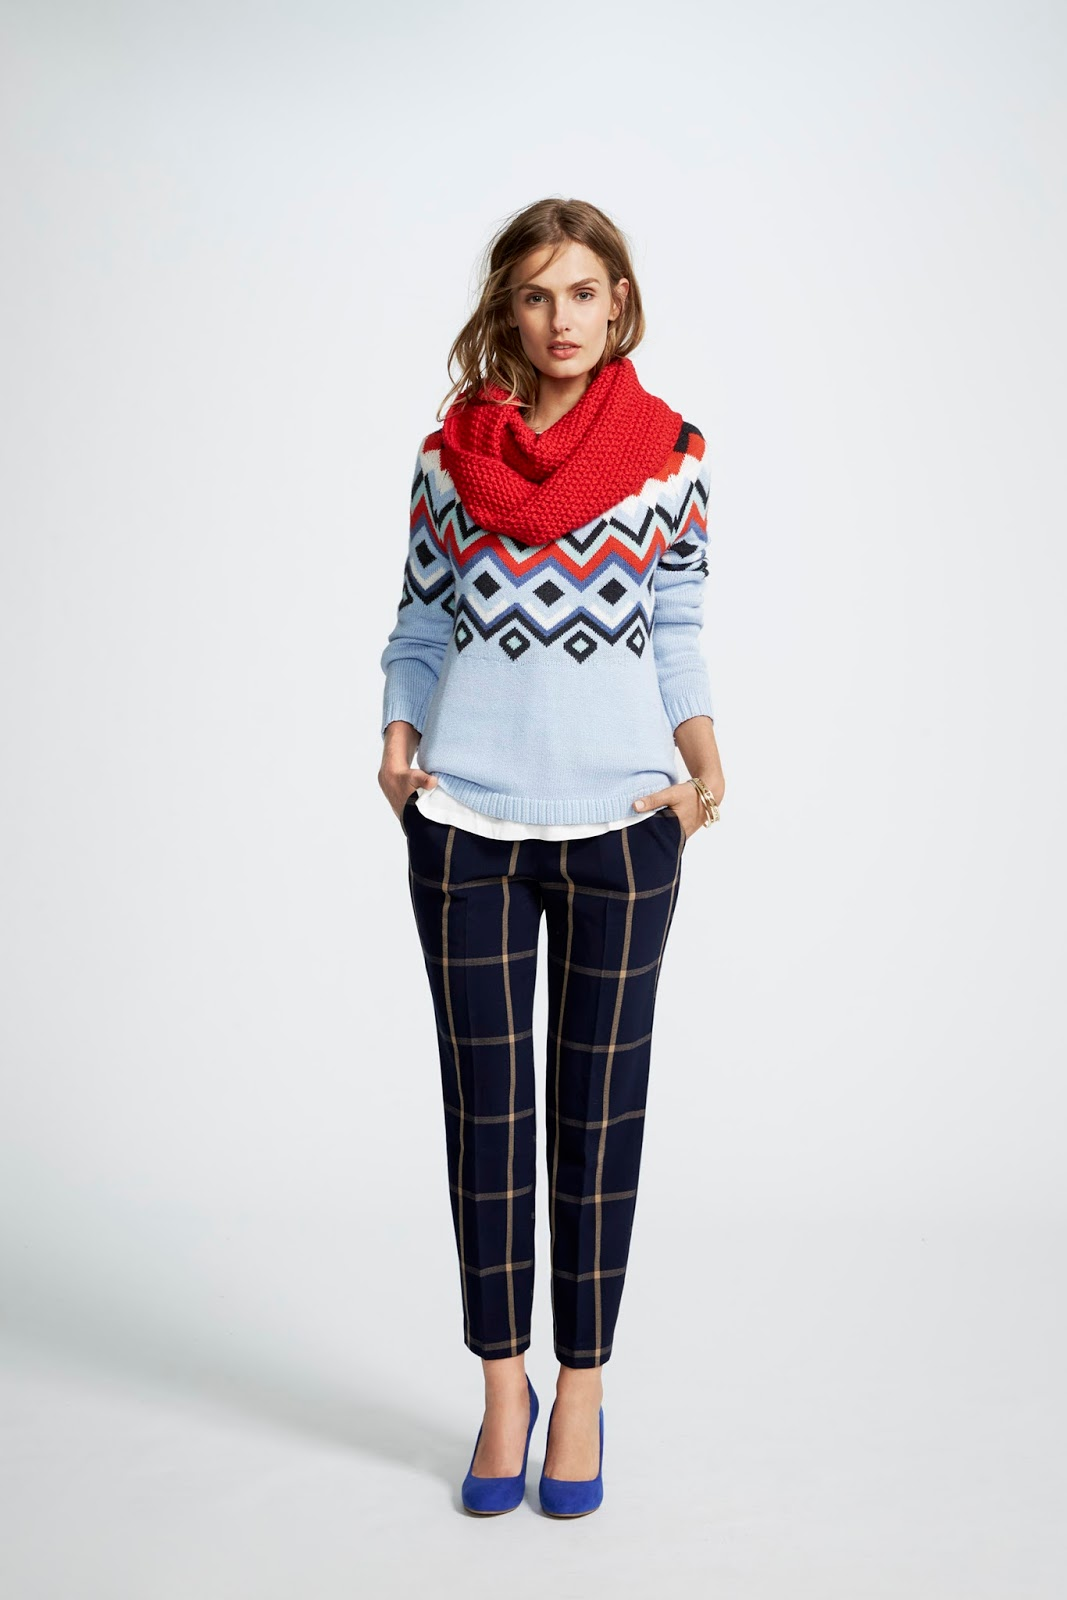 FIRST LOOK: Old Navy Holiday 2015 Collection AND an Early Spring ...